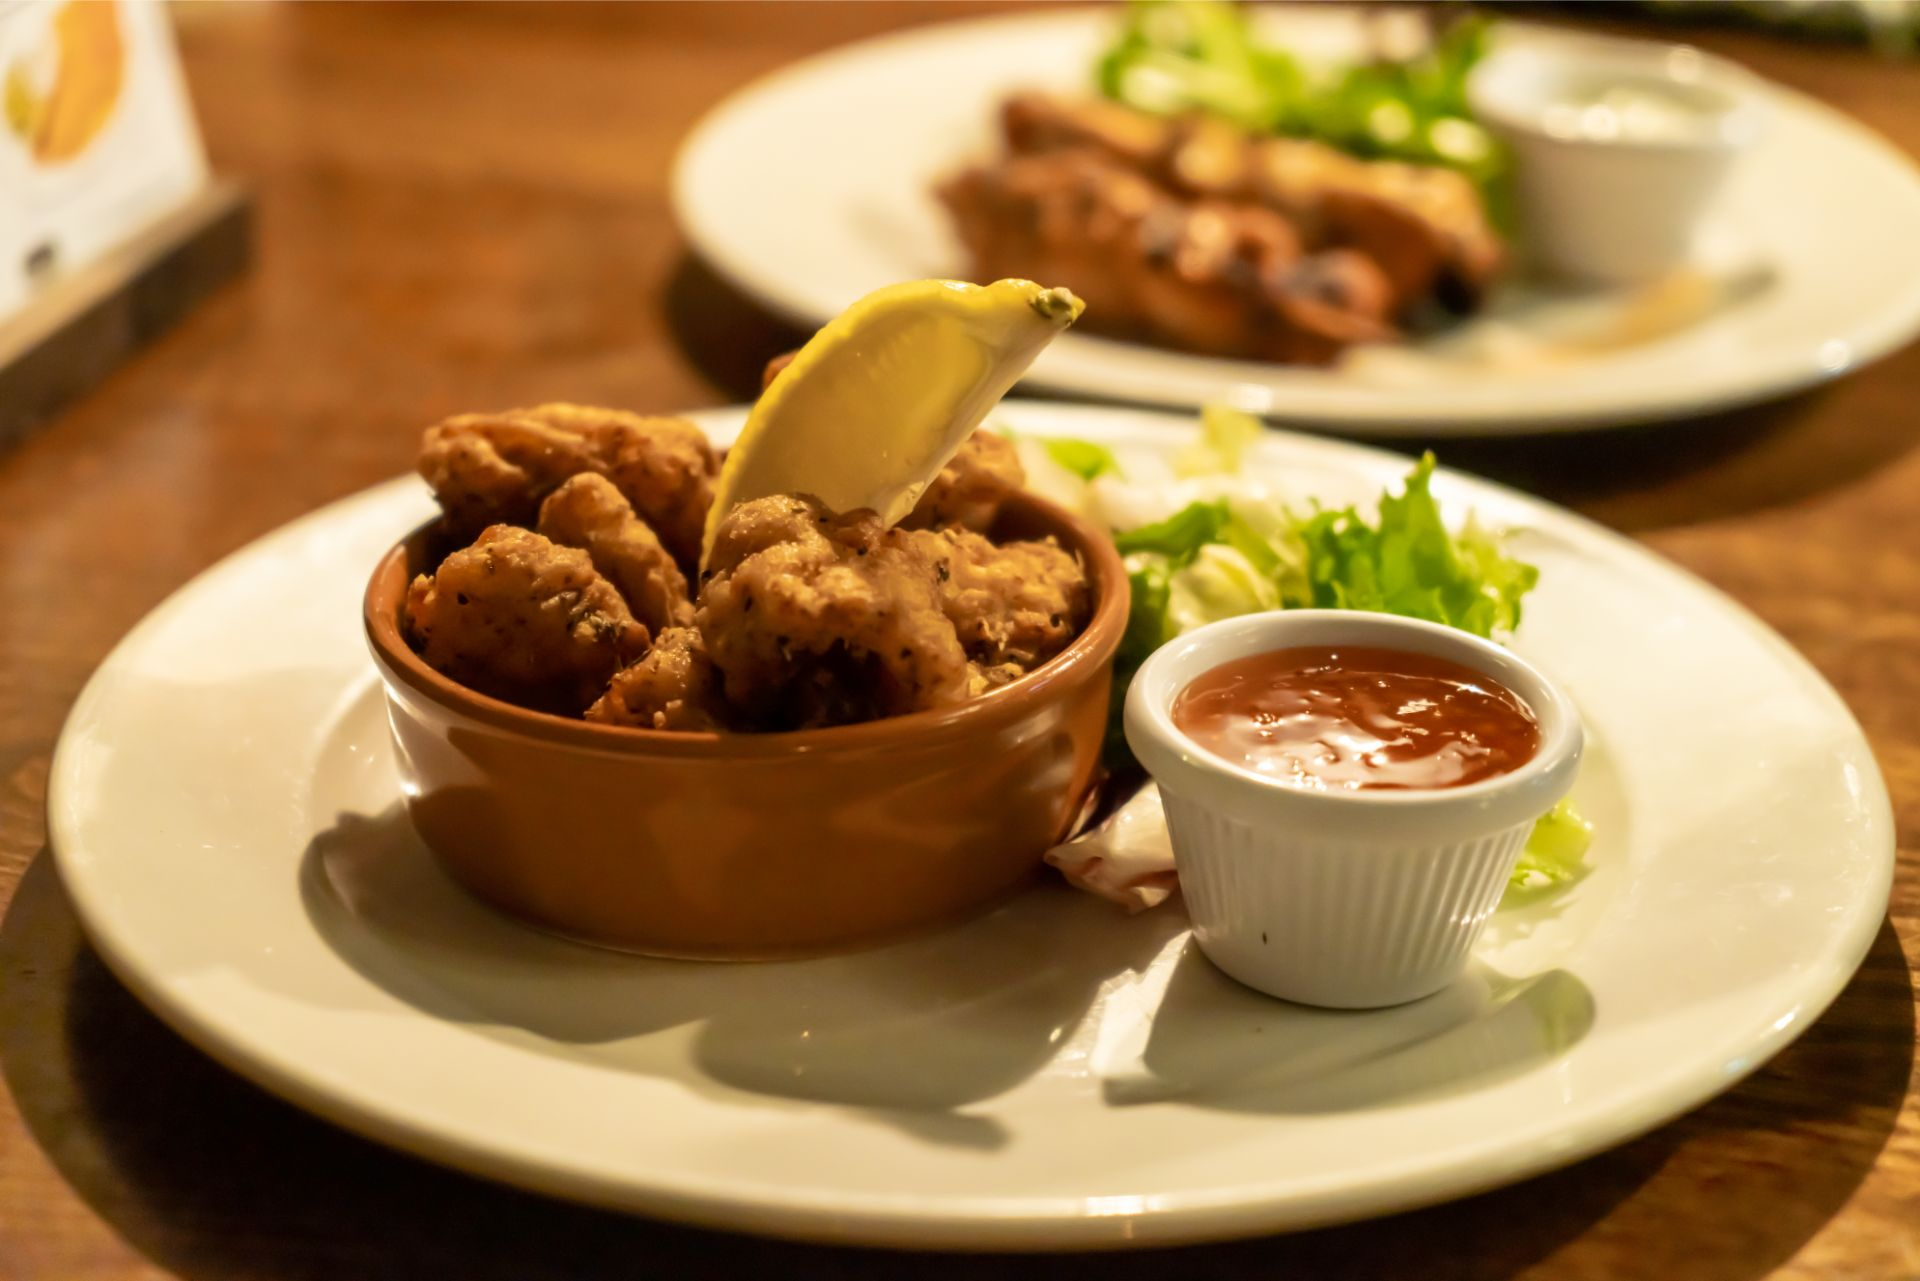 calamari-starter-at-the-beaufort-arms-pub-the-gower-wales